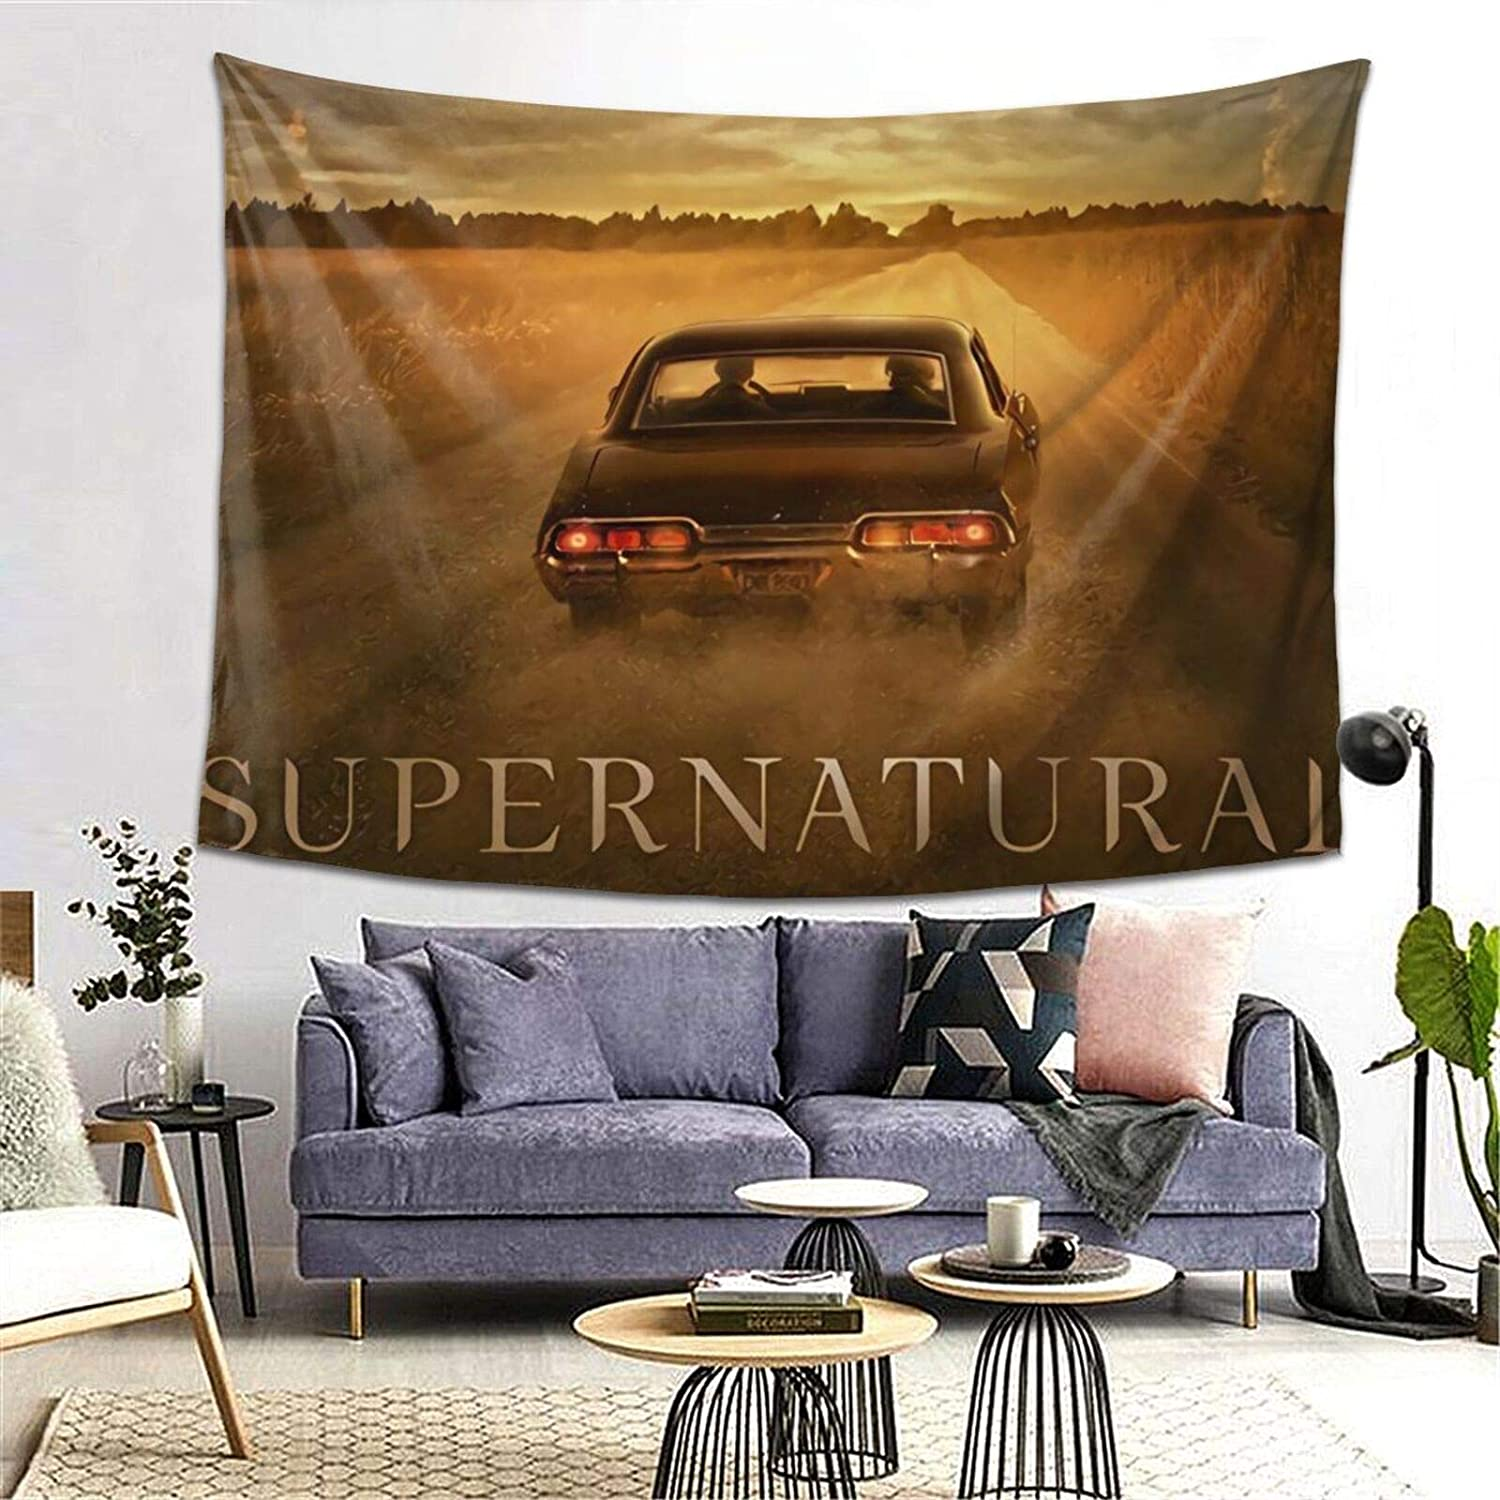 Supernatural Wall Hanging Tapestry Painting For Bedroom Living Room Dorm Studio Room Balcony Home Wall Decor Tapestries For Teen 80*60 Inch